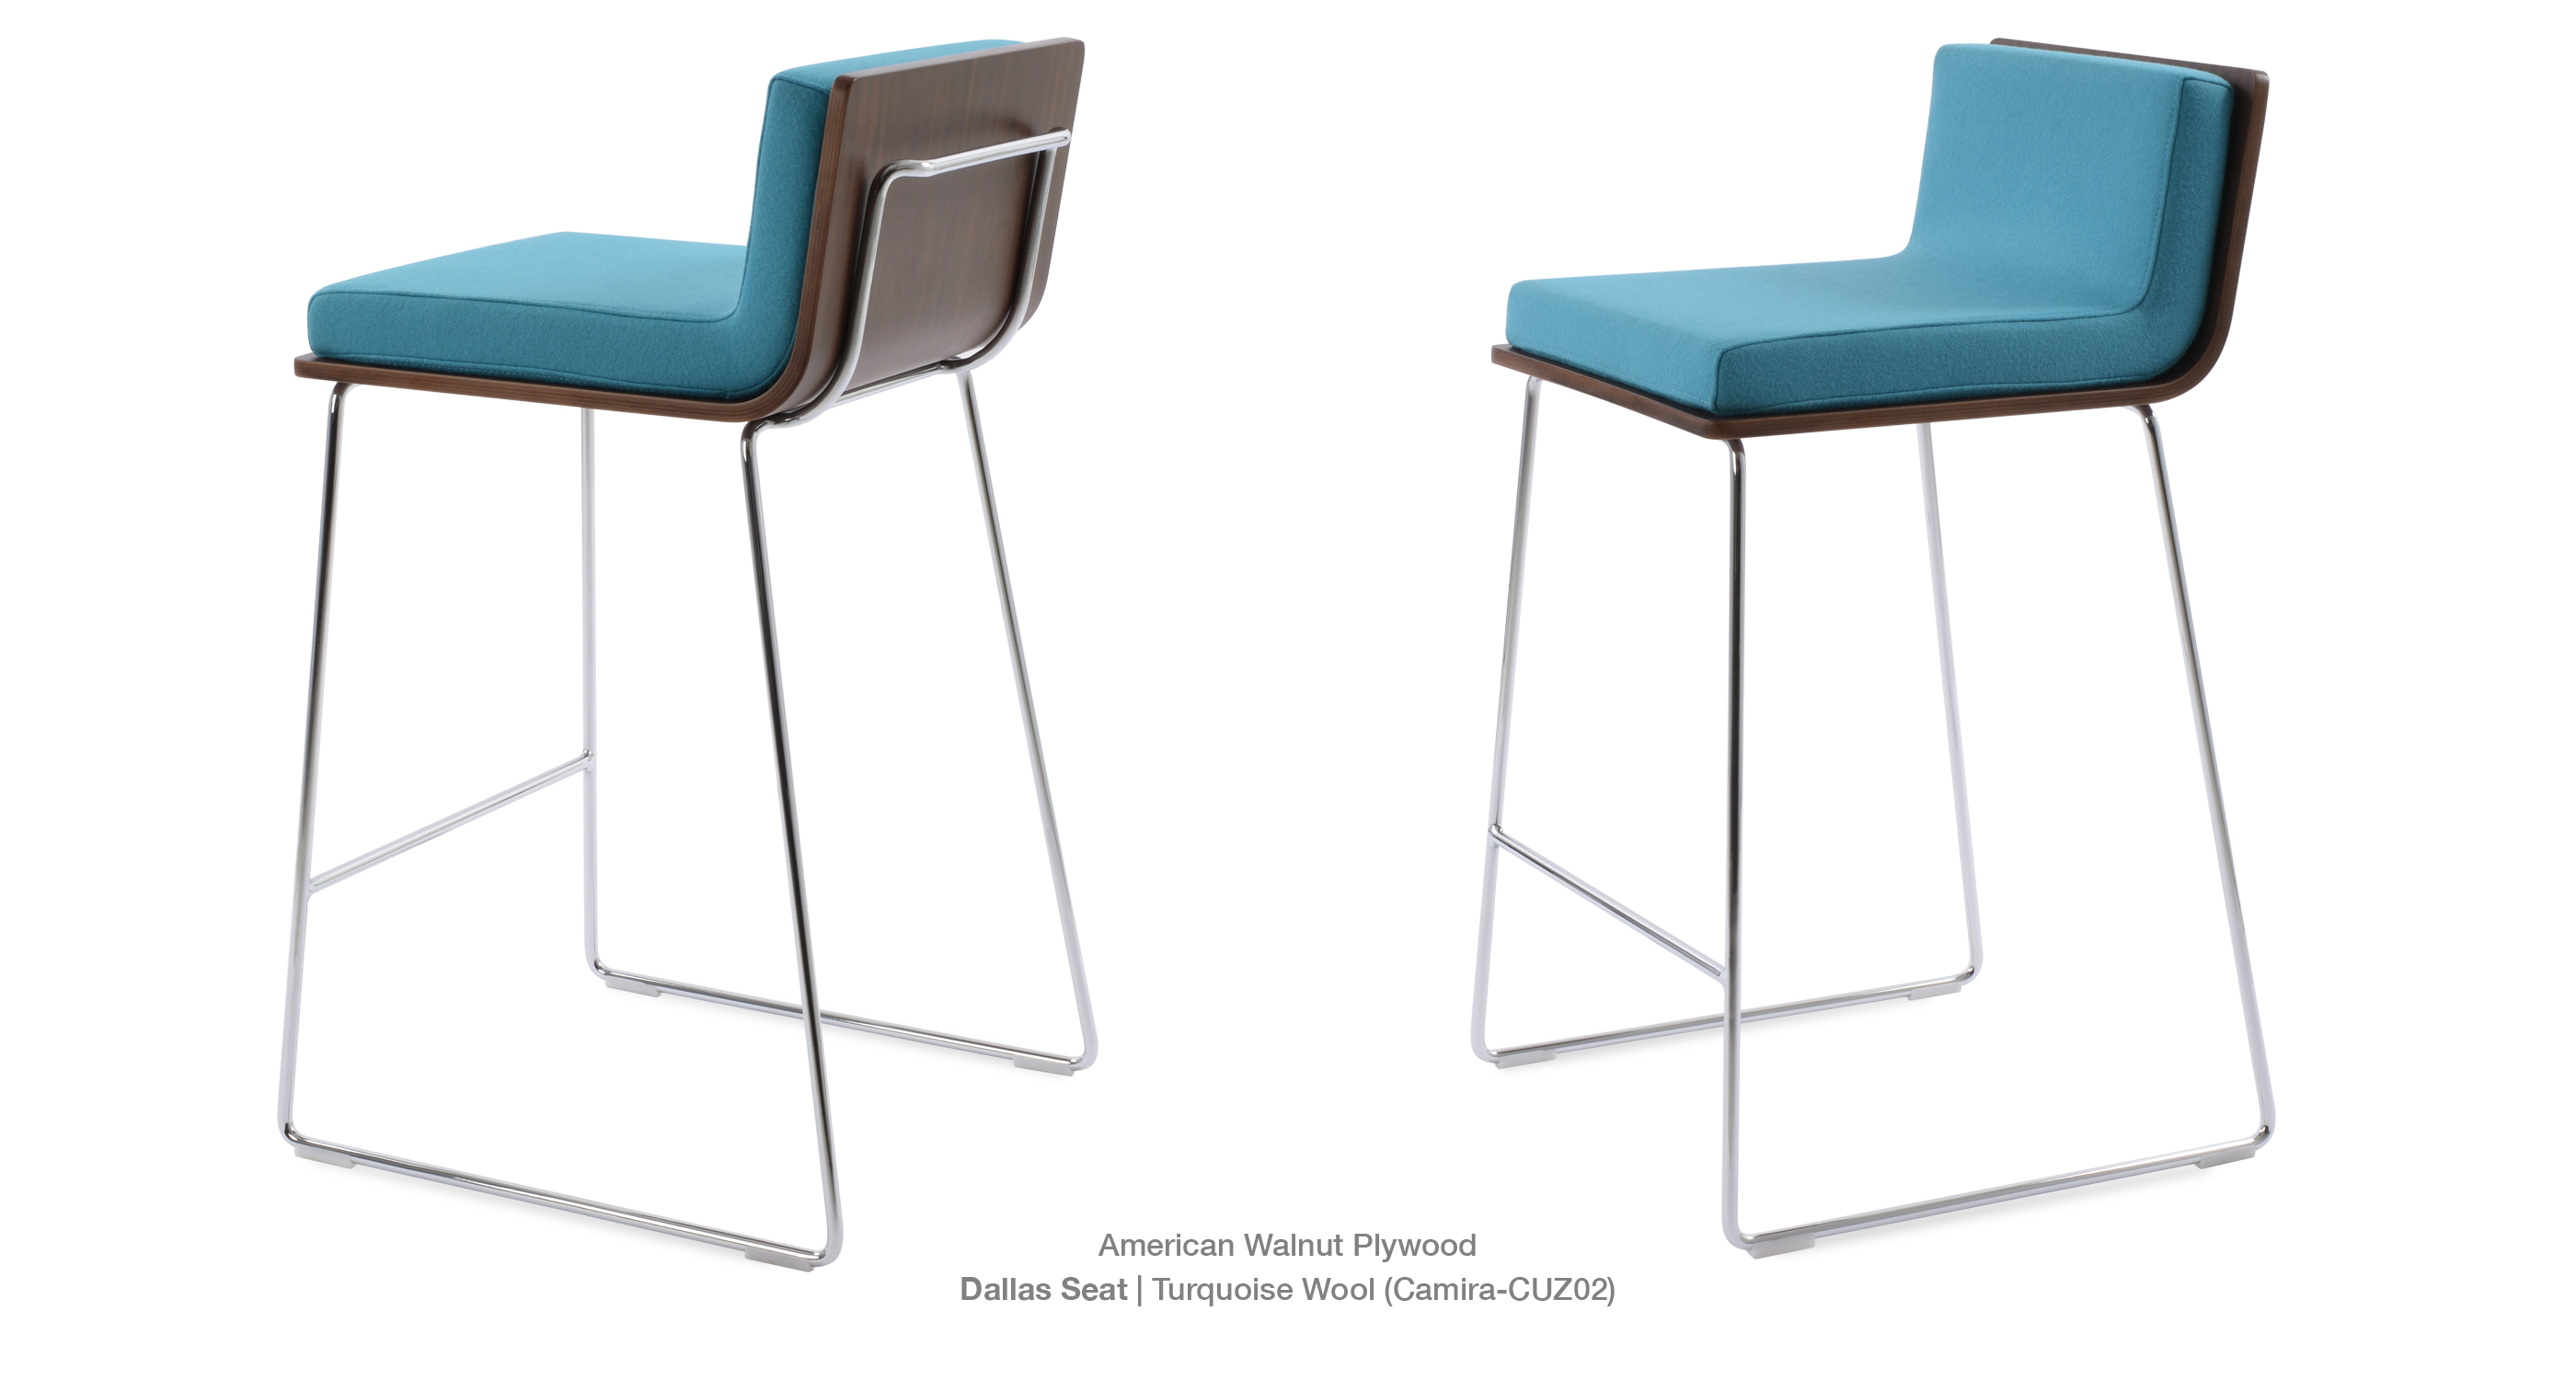 Dallas Pl Wire Stool Dallas Seat Turquoise Wool